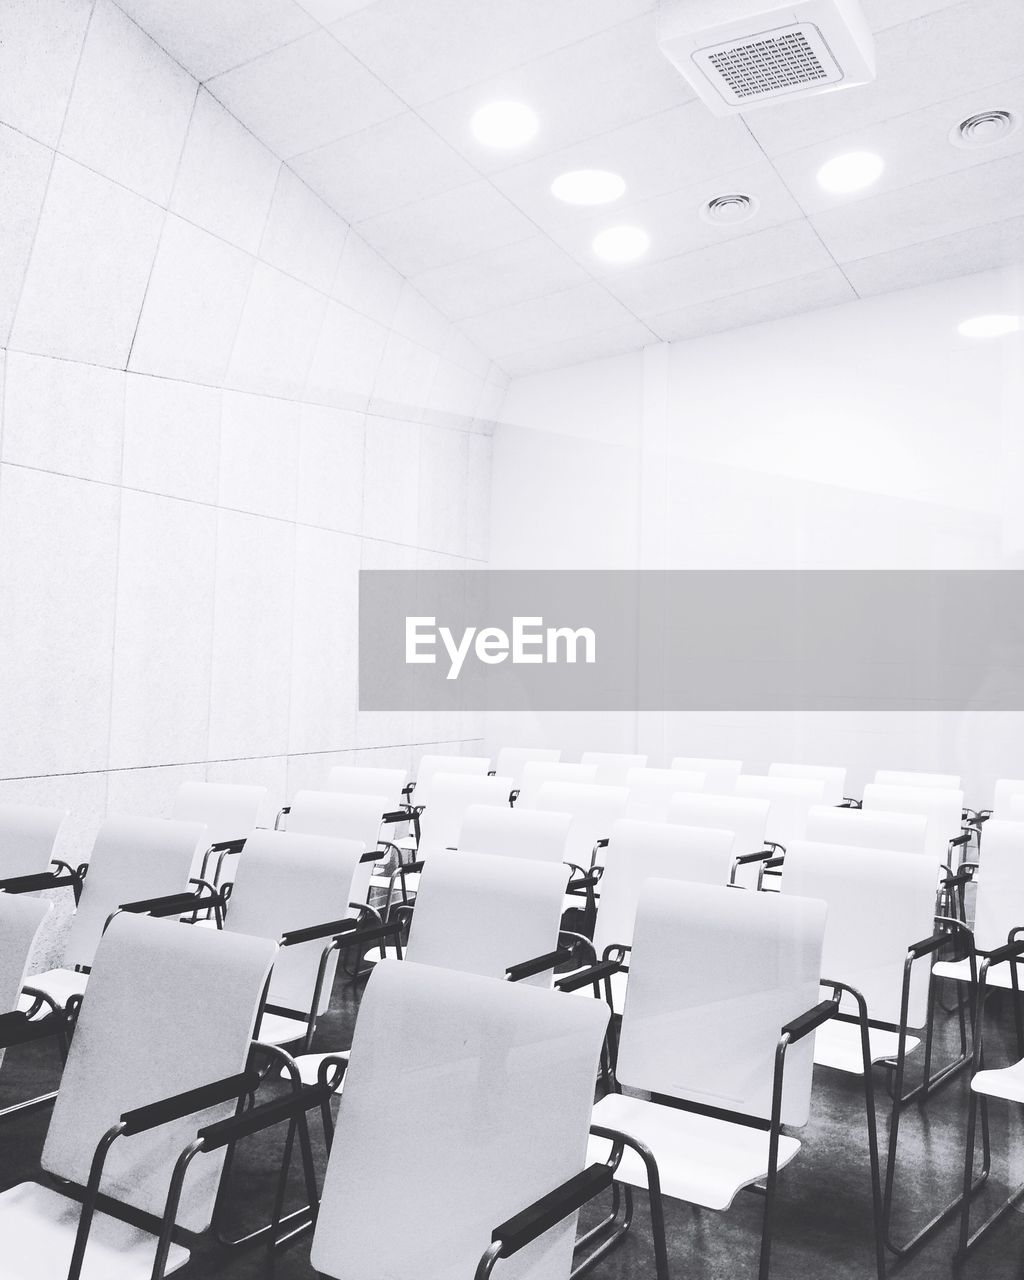 indoors, seat, empty, chair, absence, table, school, education, no people, in a row, classroom, business, learning, office, desk, university, illuminated, ceiling, architecture